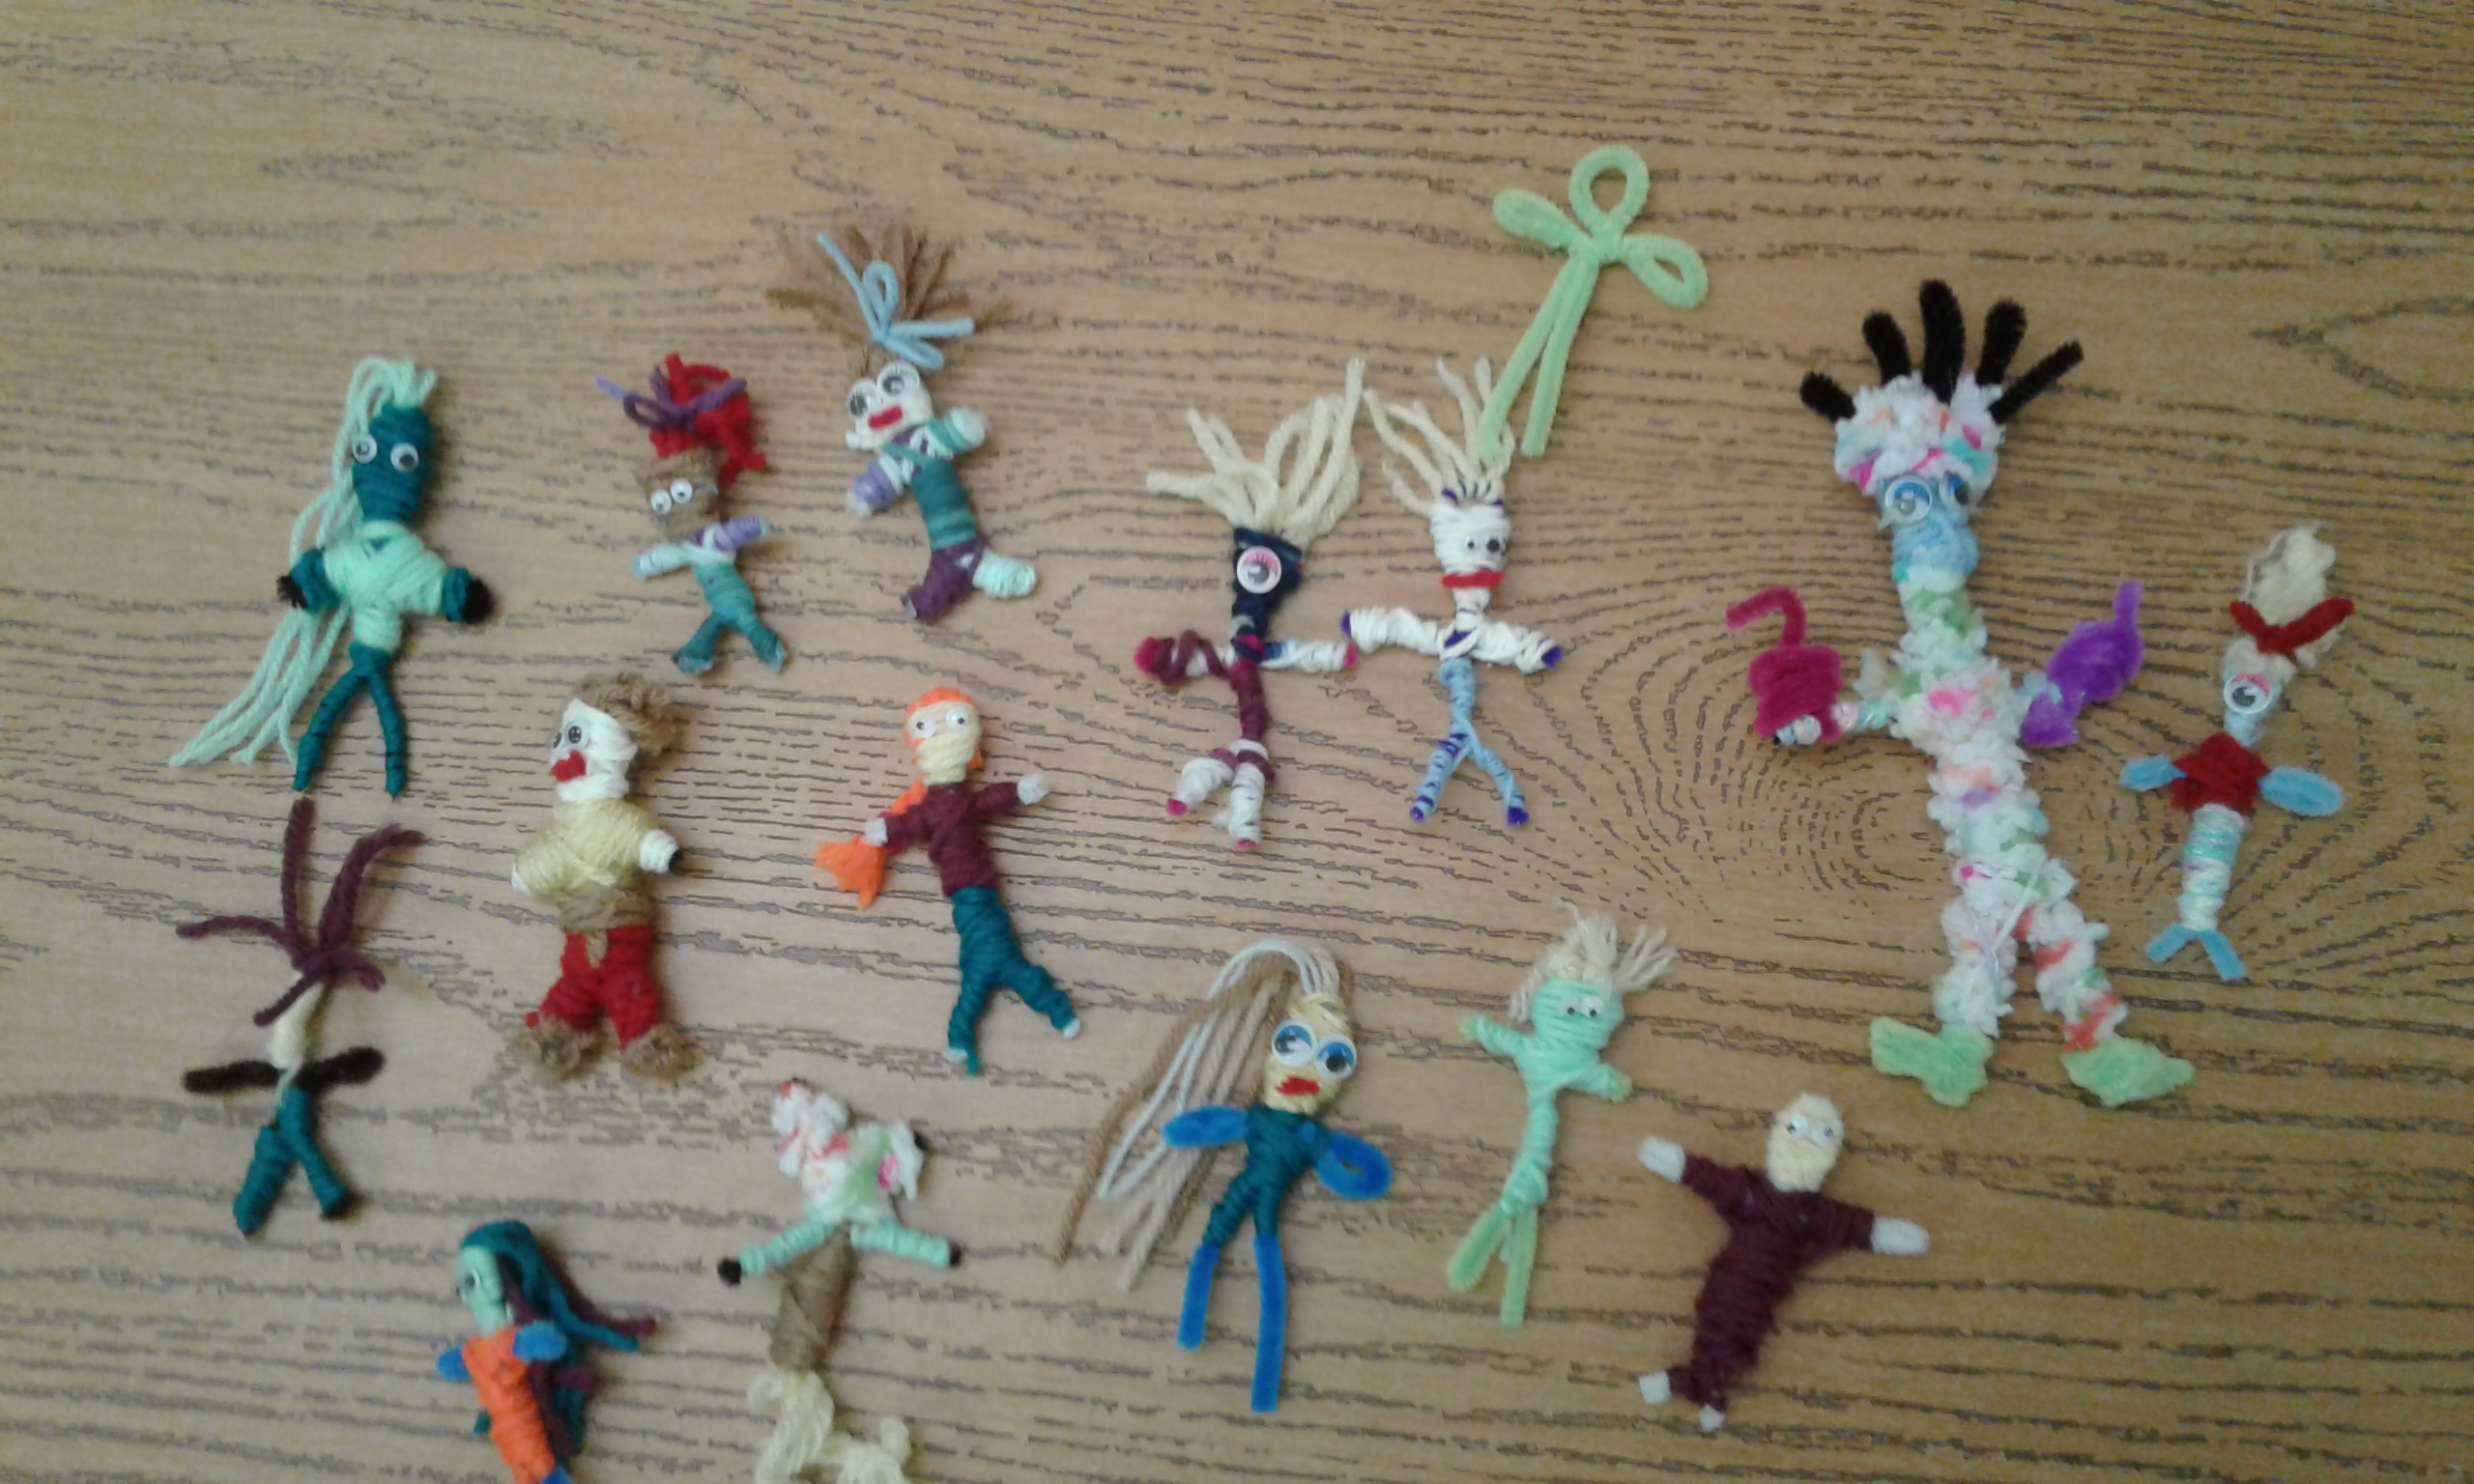 Muñecas quitapenas (worry dolls) created at art immersion activity